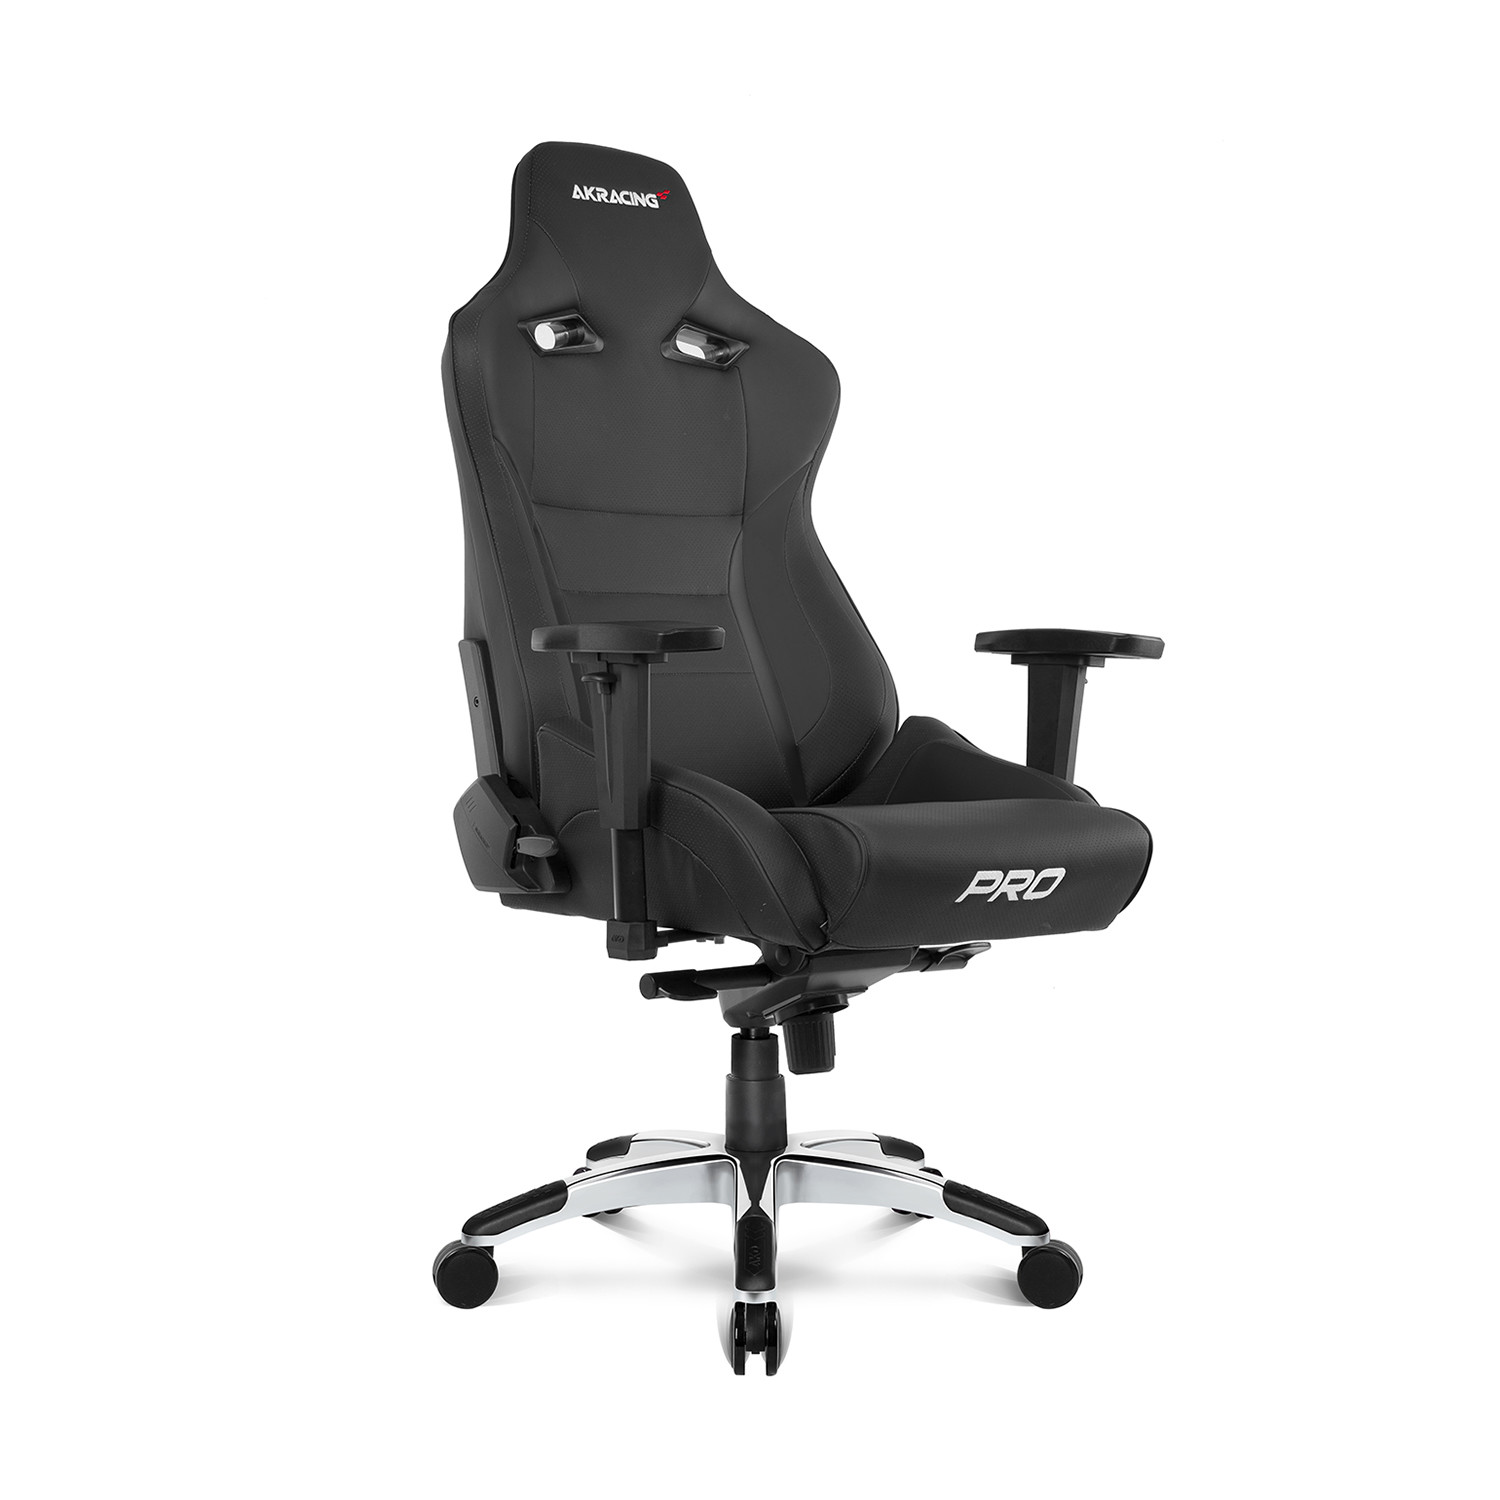 Pro Gaming Chair Black  AKRacing  Touch of Modern